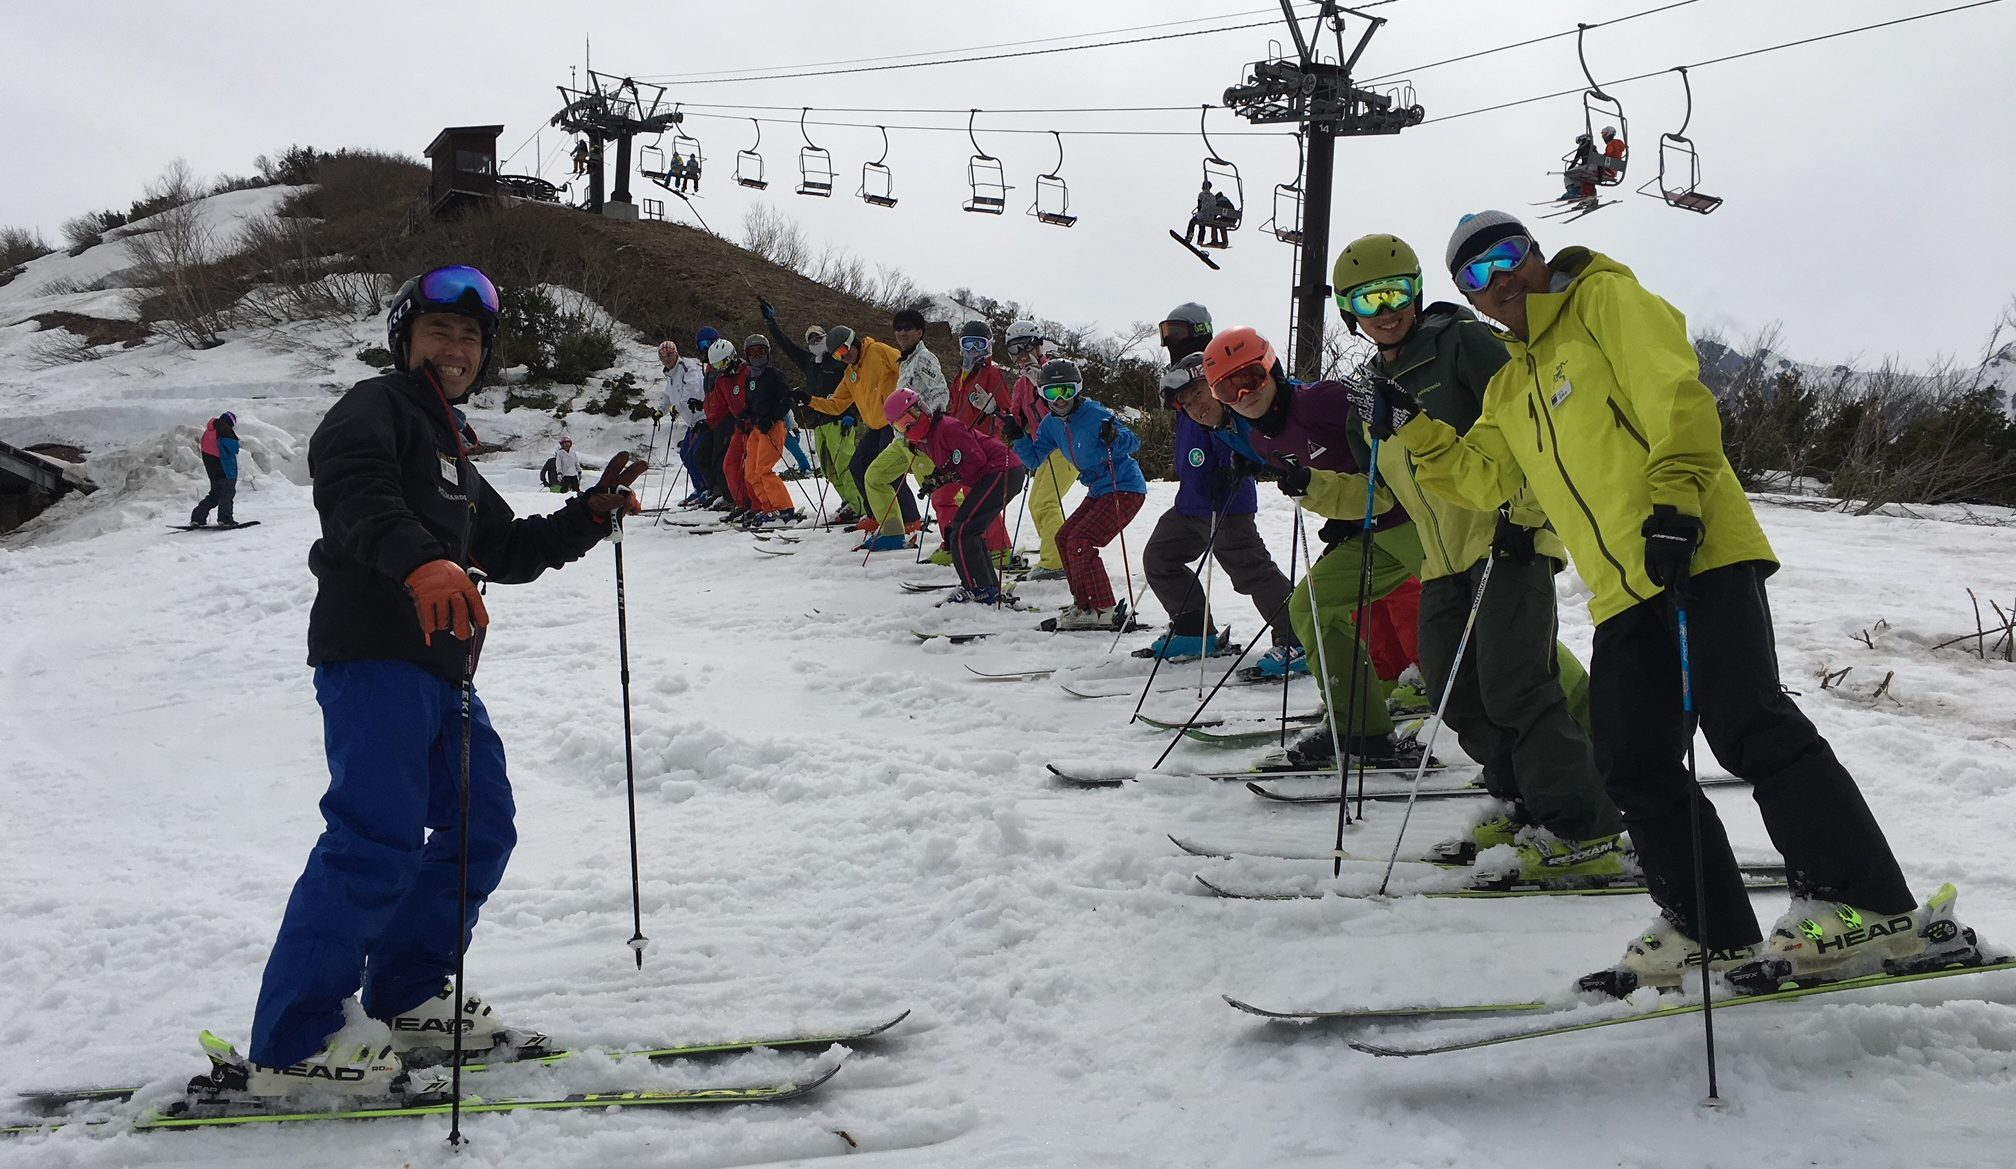 Group lesson being lead by a Hakuba47 instructor